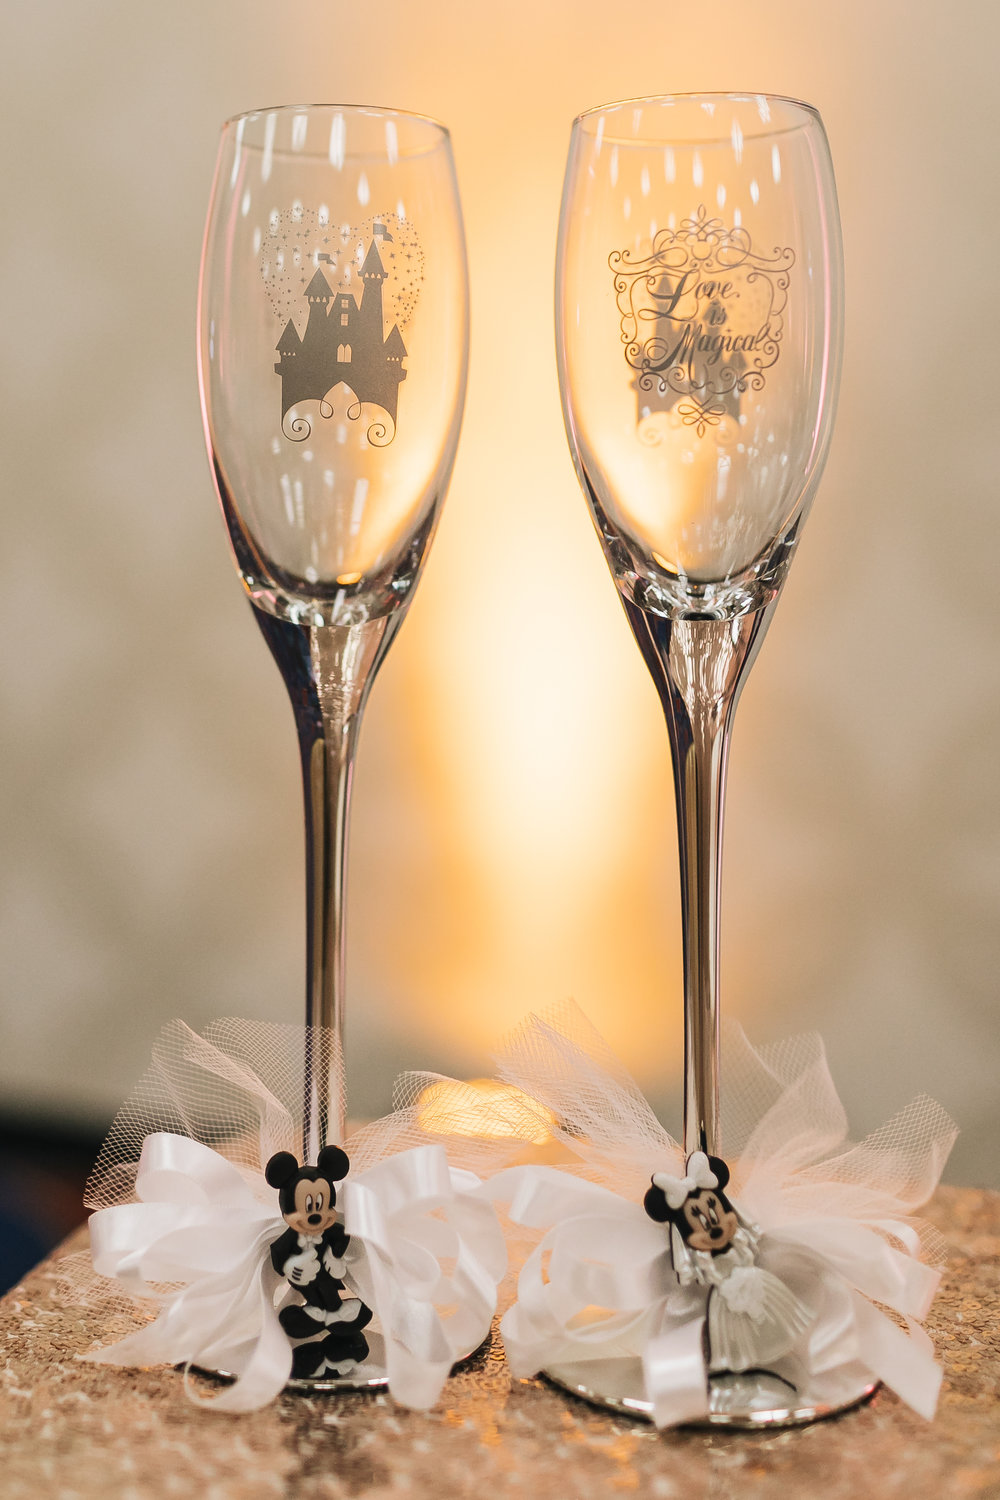 Disney wedding customized decor, champagne flutes photographed by Analisa Joy Photography. Wedding Beauty by Vanity Belle. www.thevanitybelle.com